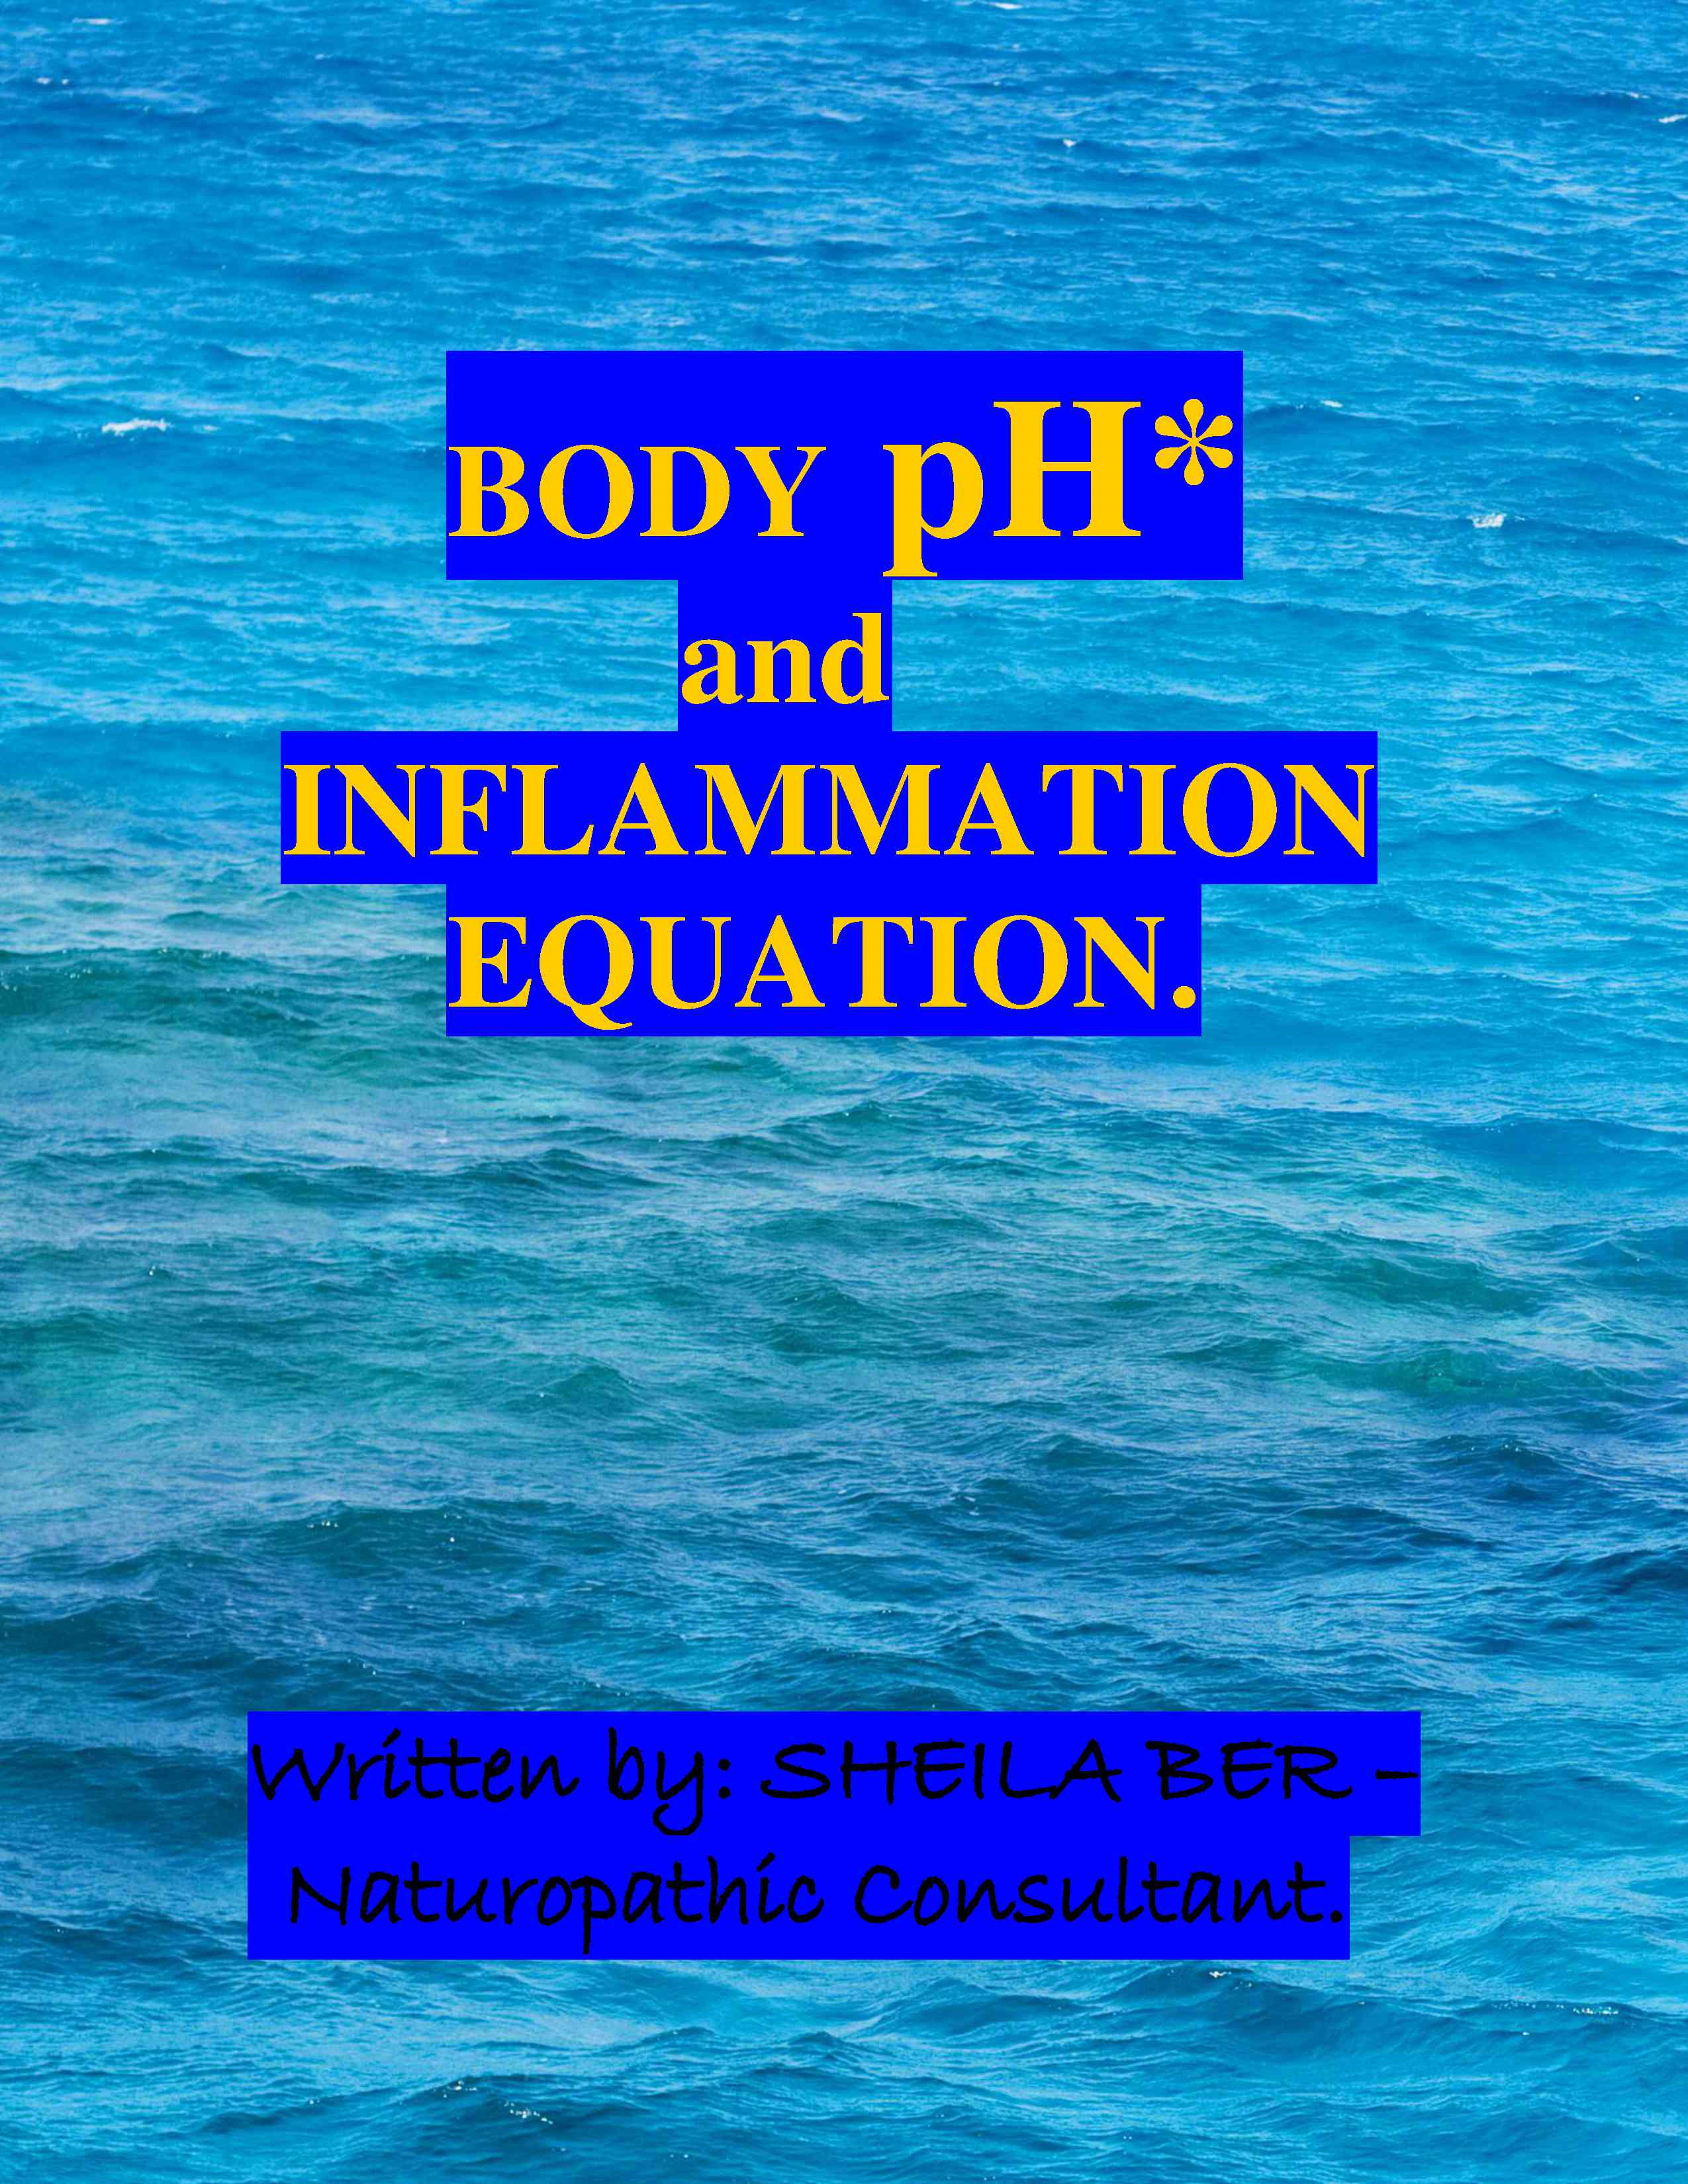 BODY pH AND THE INFLAMMATION EQUATION - By SHEILA BER.